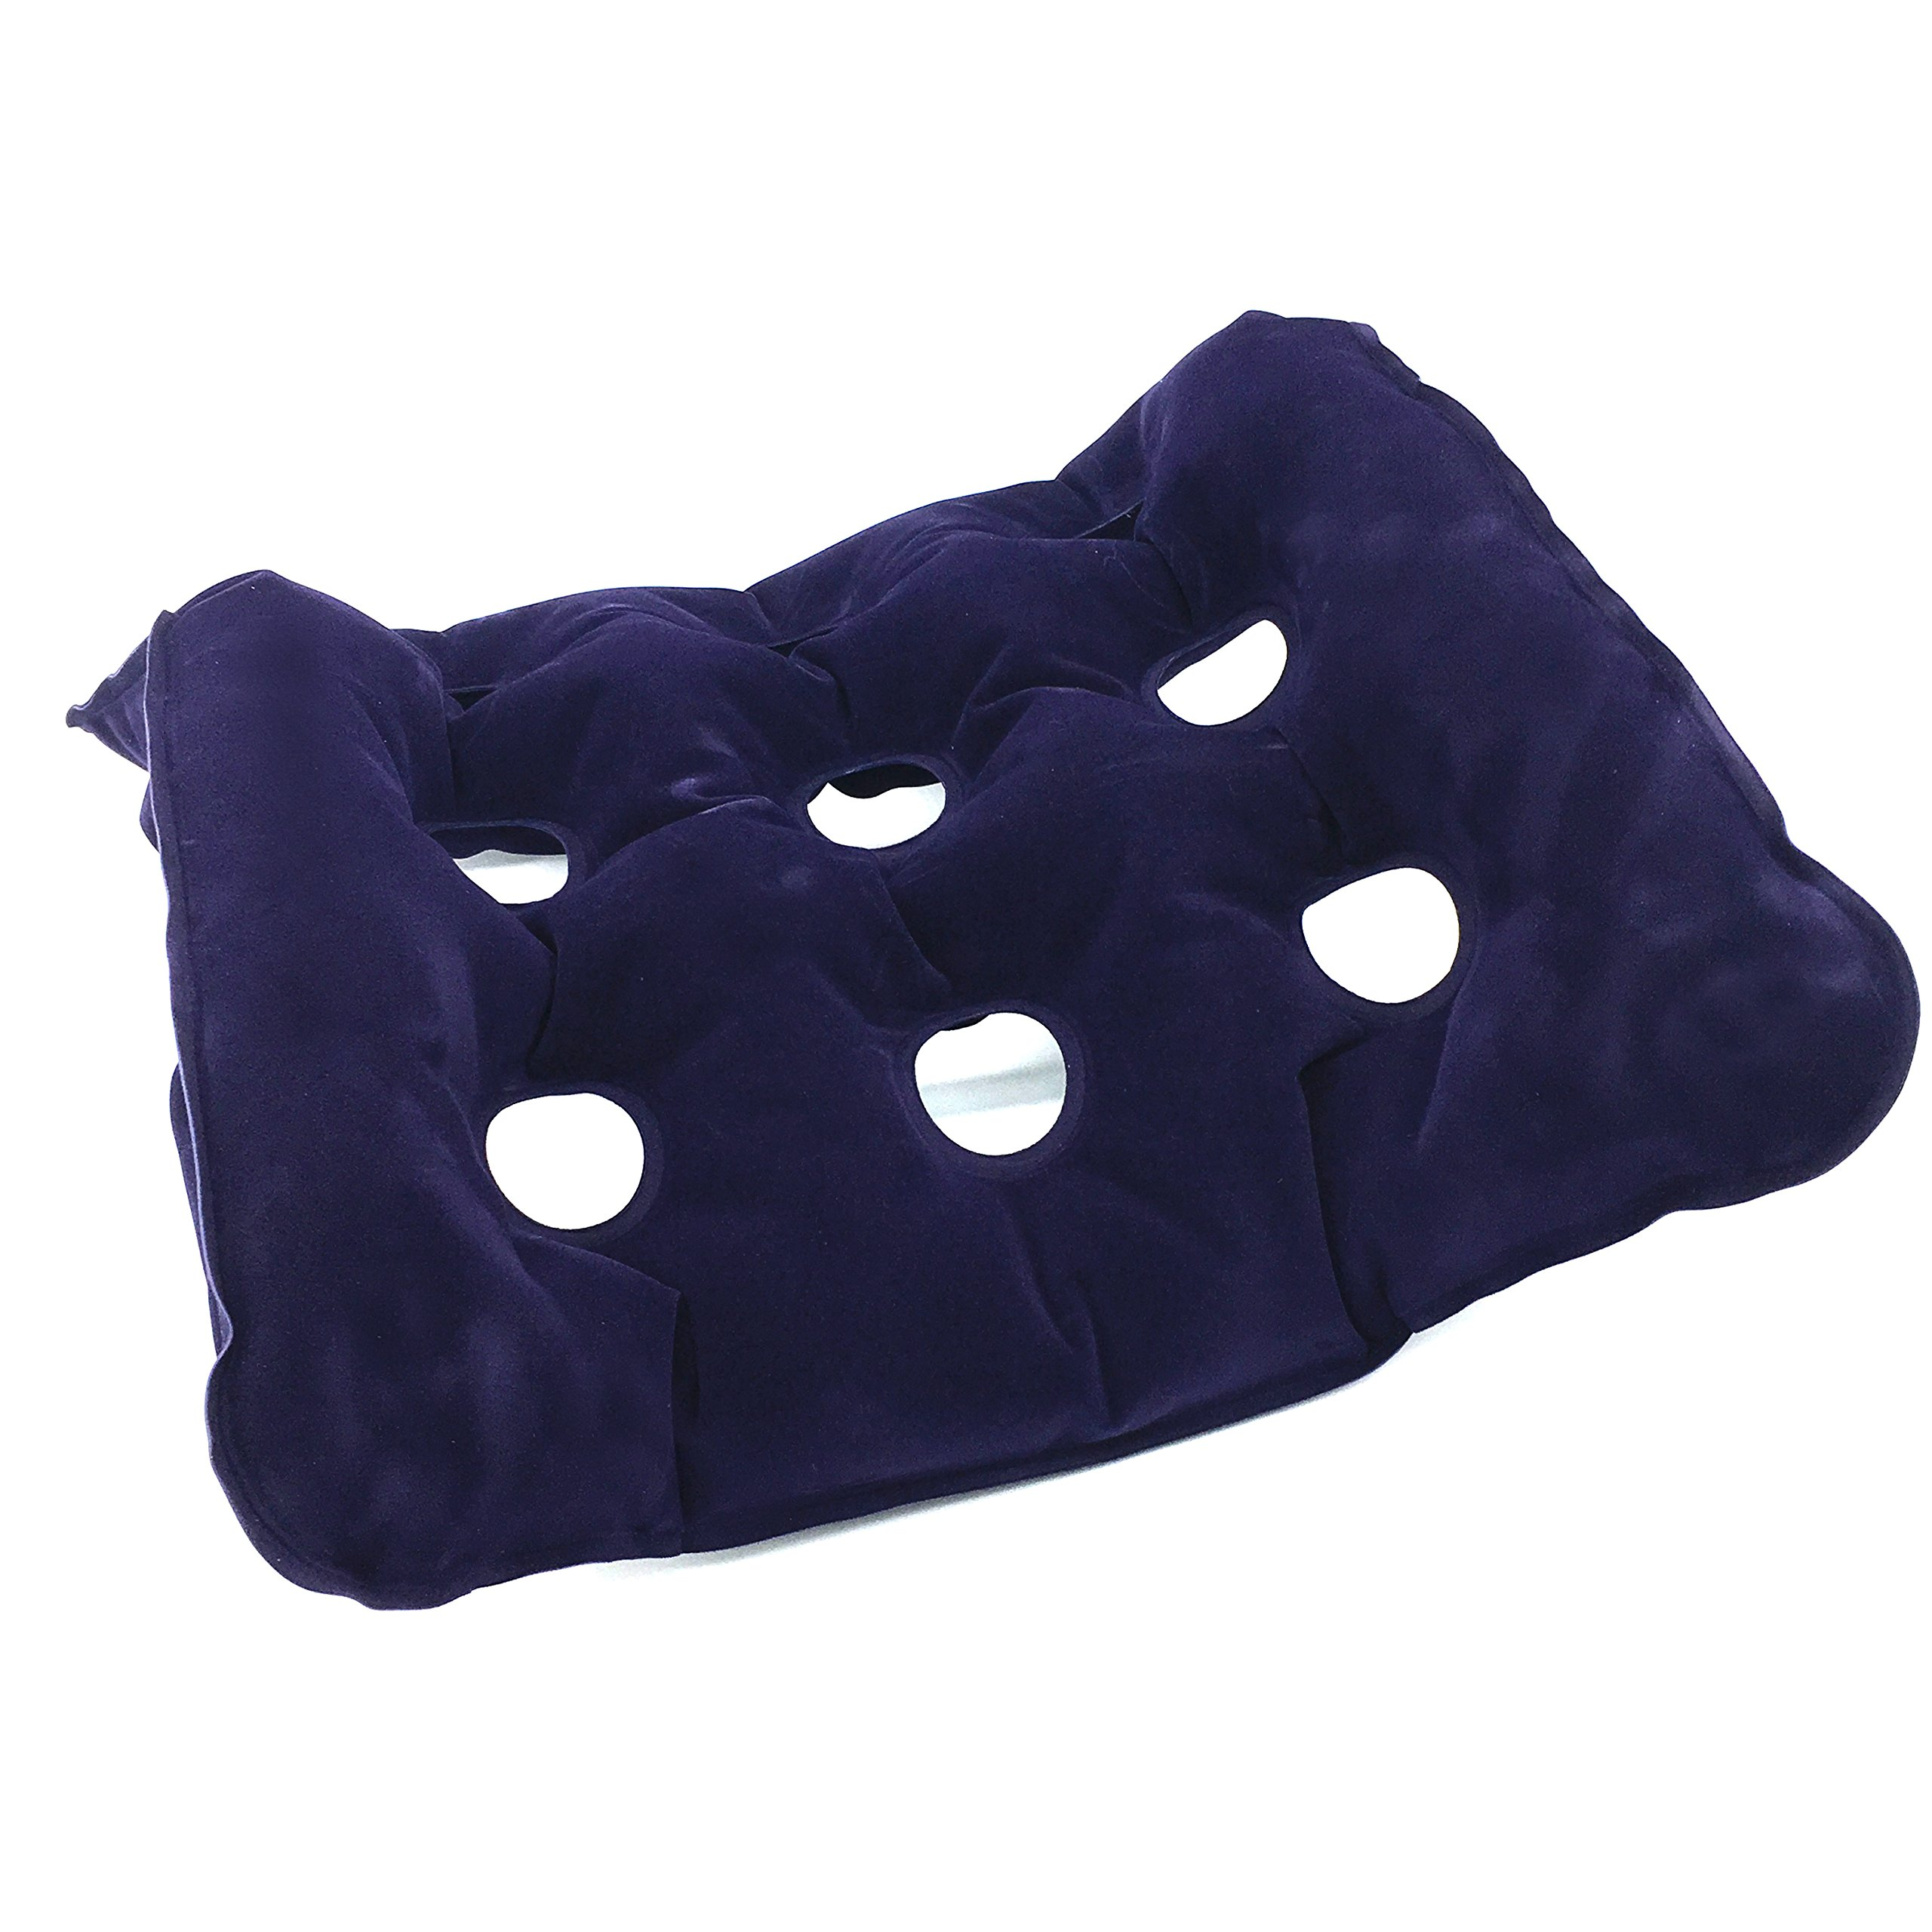 Silfrae Air Inflatable Seat Cushion, Ideal Design for Wheelchair, Office, All Day use, Perfect for Travel use, Heat Sealed Construction for Durability and Stability. (Purple, 18.5''x 18.5'')